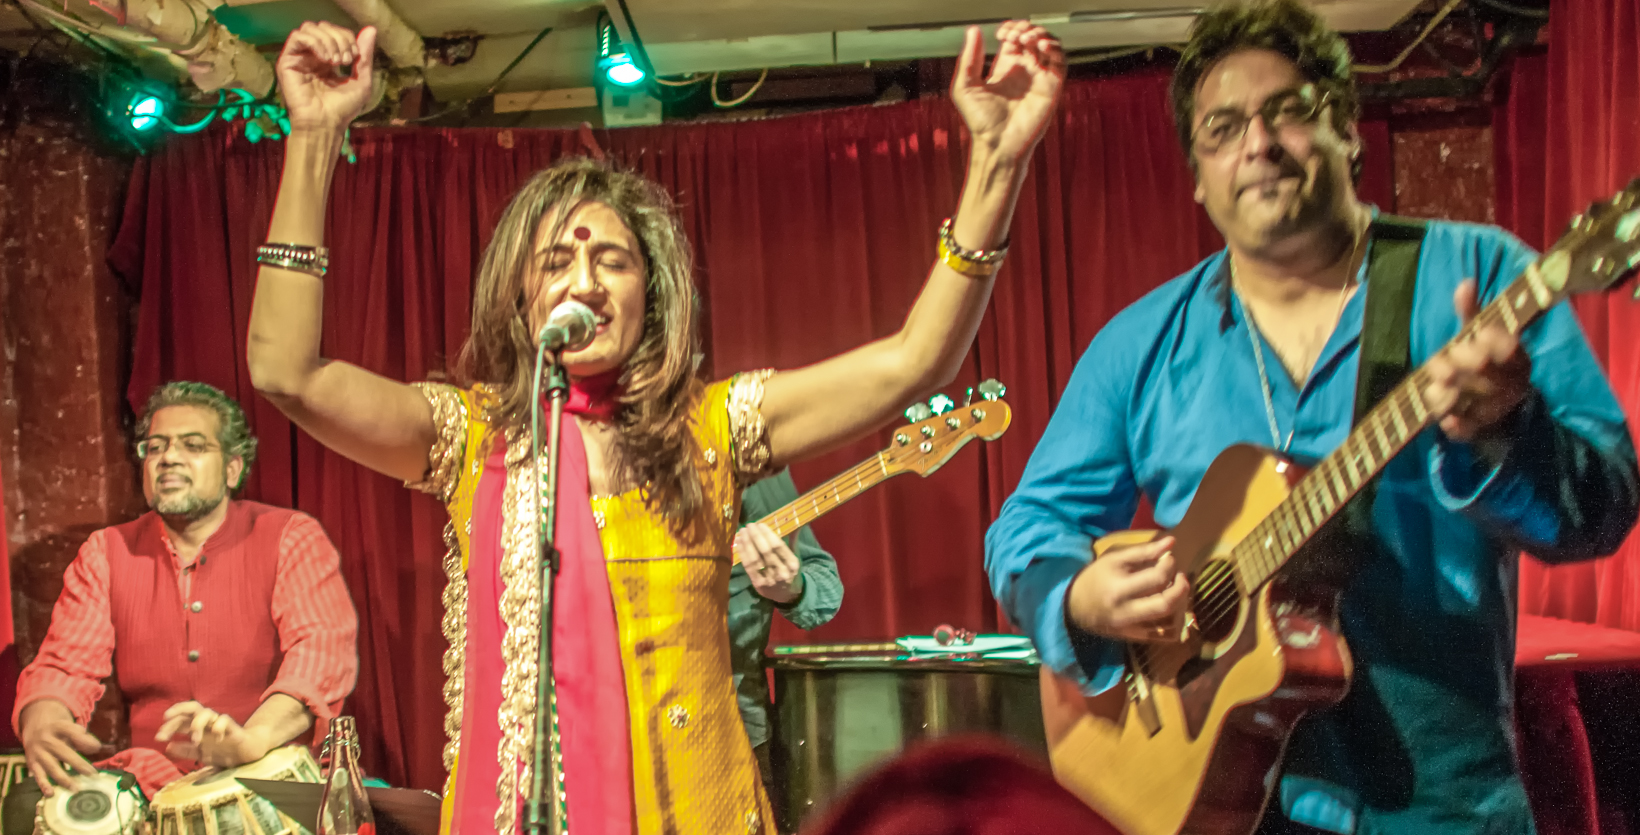 Sameer gupta, kiran ahluwalia and rez abassi at the cornelia street cafe